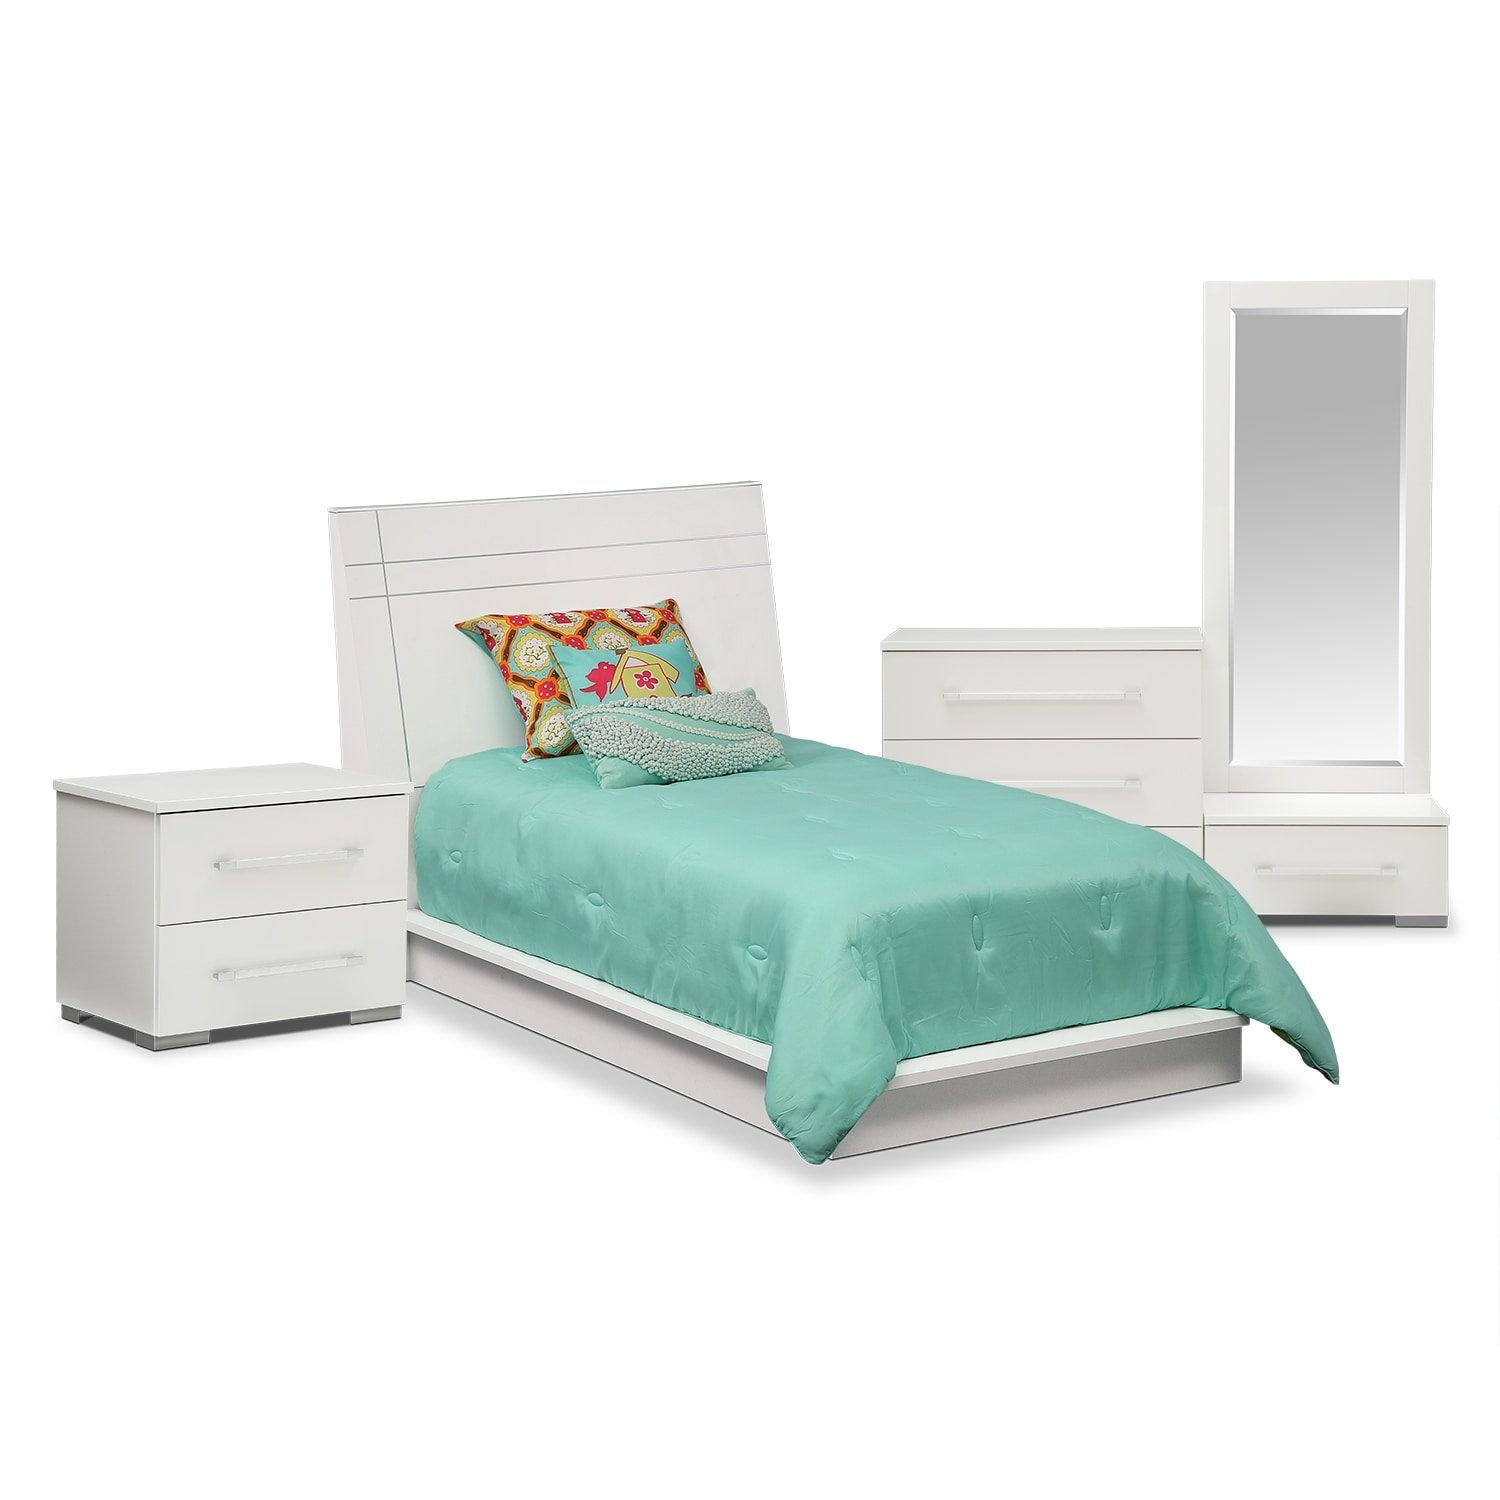 Bedroom Furniture - Dimora White II 6 Pc. Twin Bedroom (Alternate)